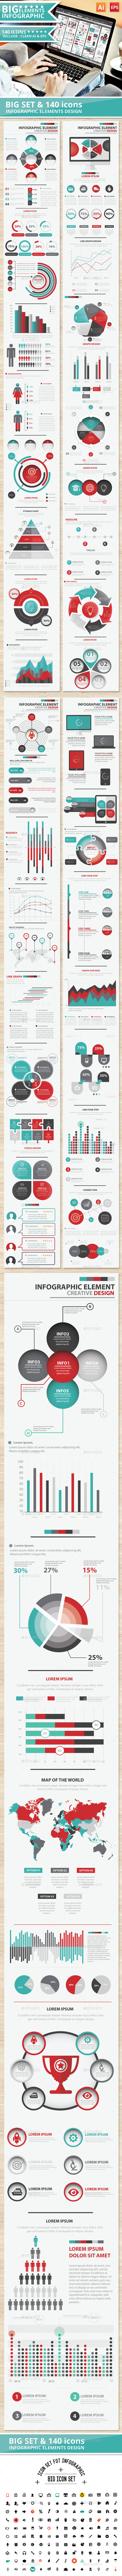 Big Infographic Elements Design Scheme V. 3 - Infographics